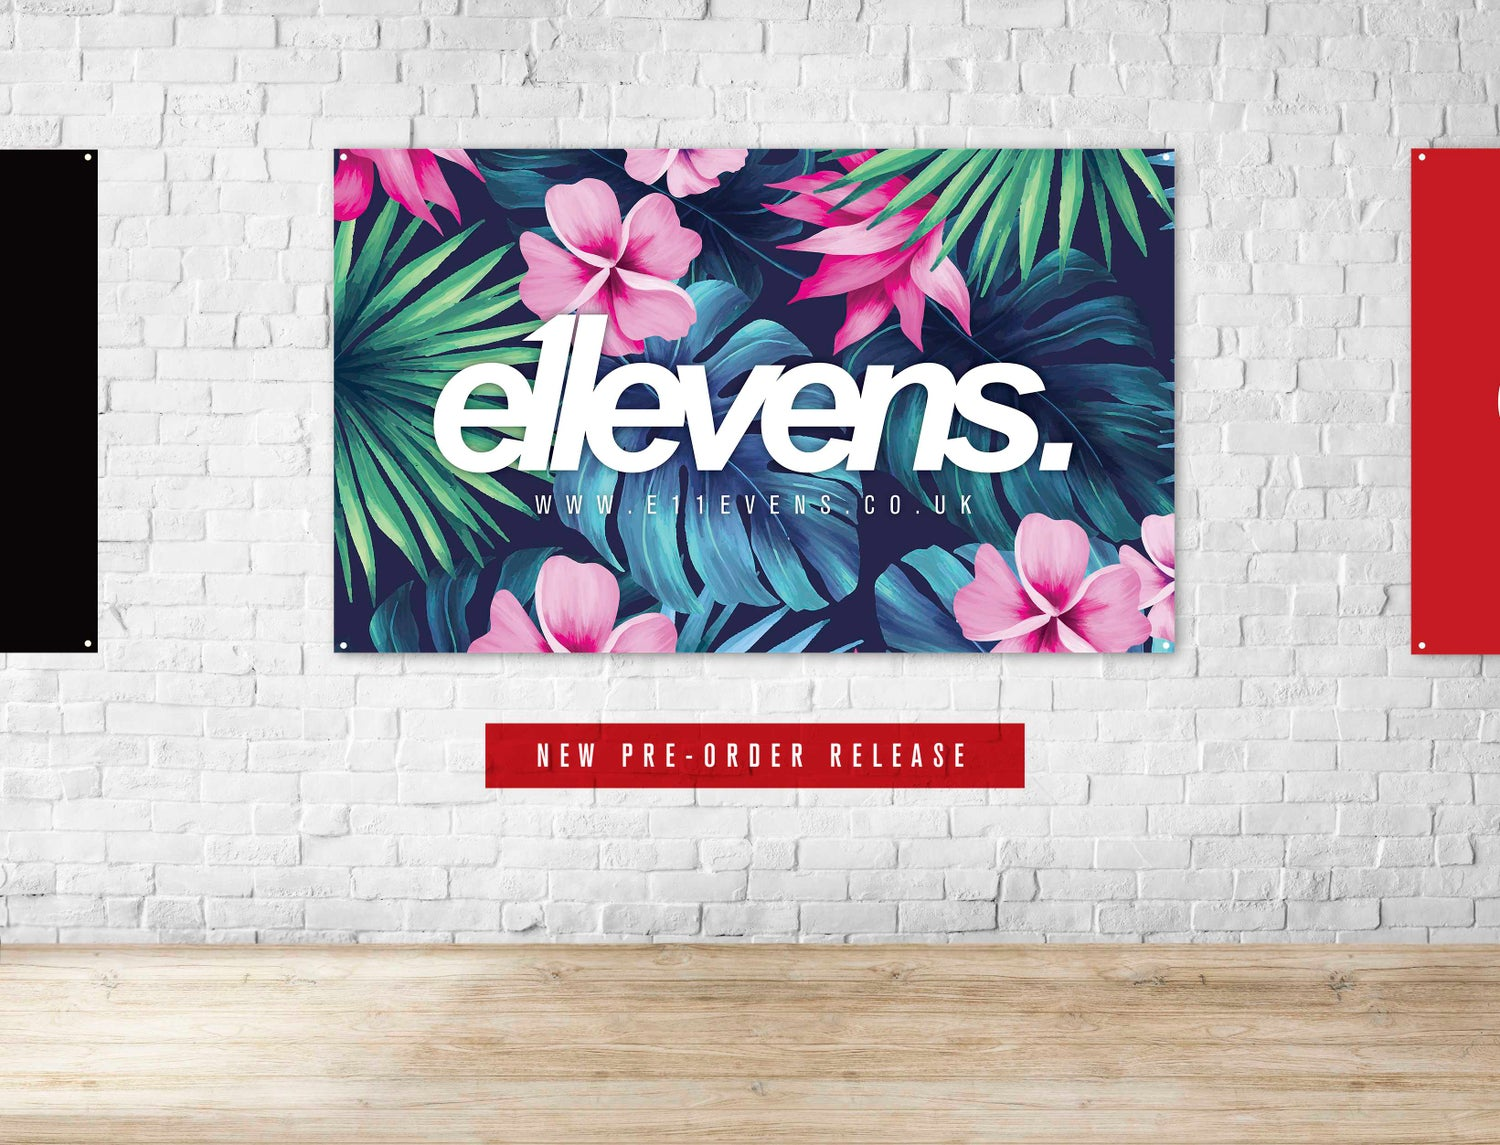 Image of E11evens - Garage banners